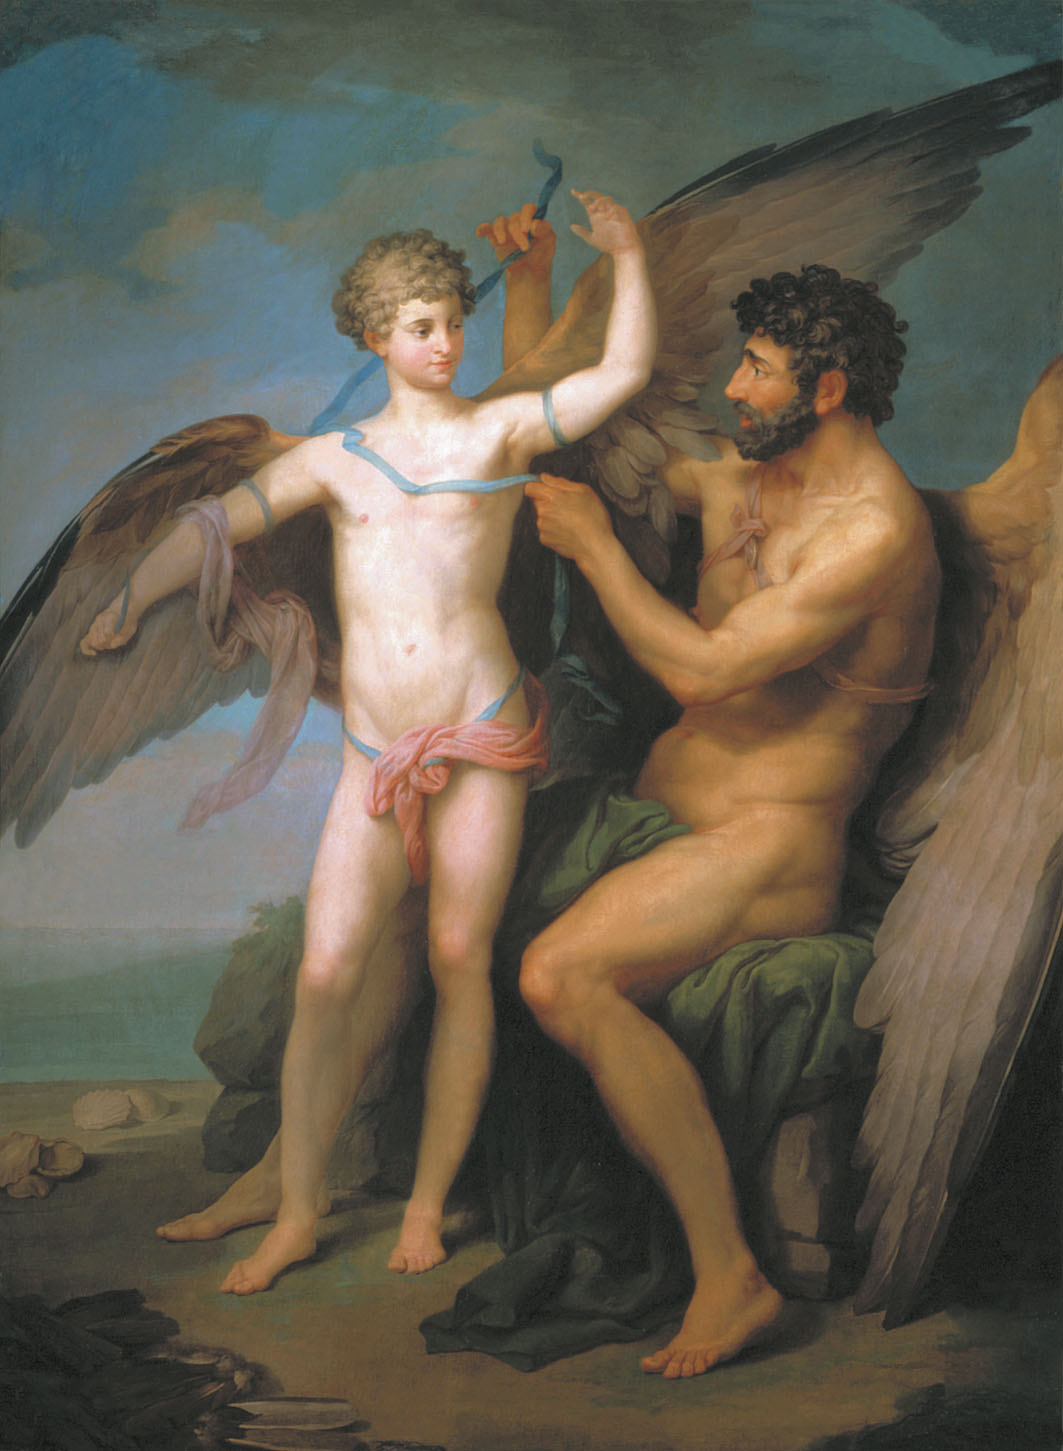 Daedalus and Icarus by Pyotr Ivanovich Sokolov